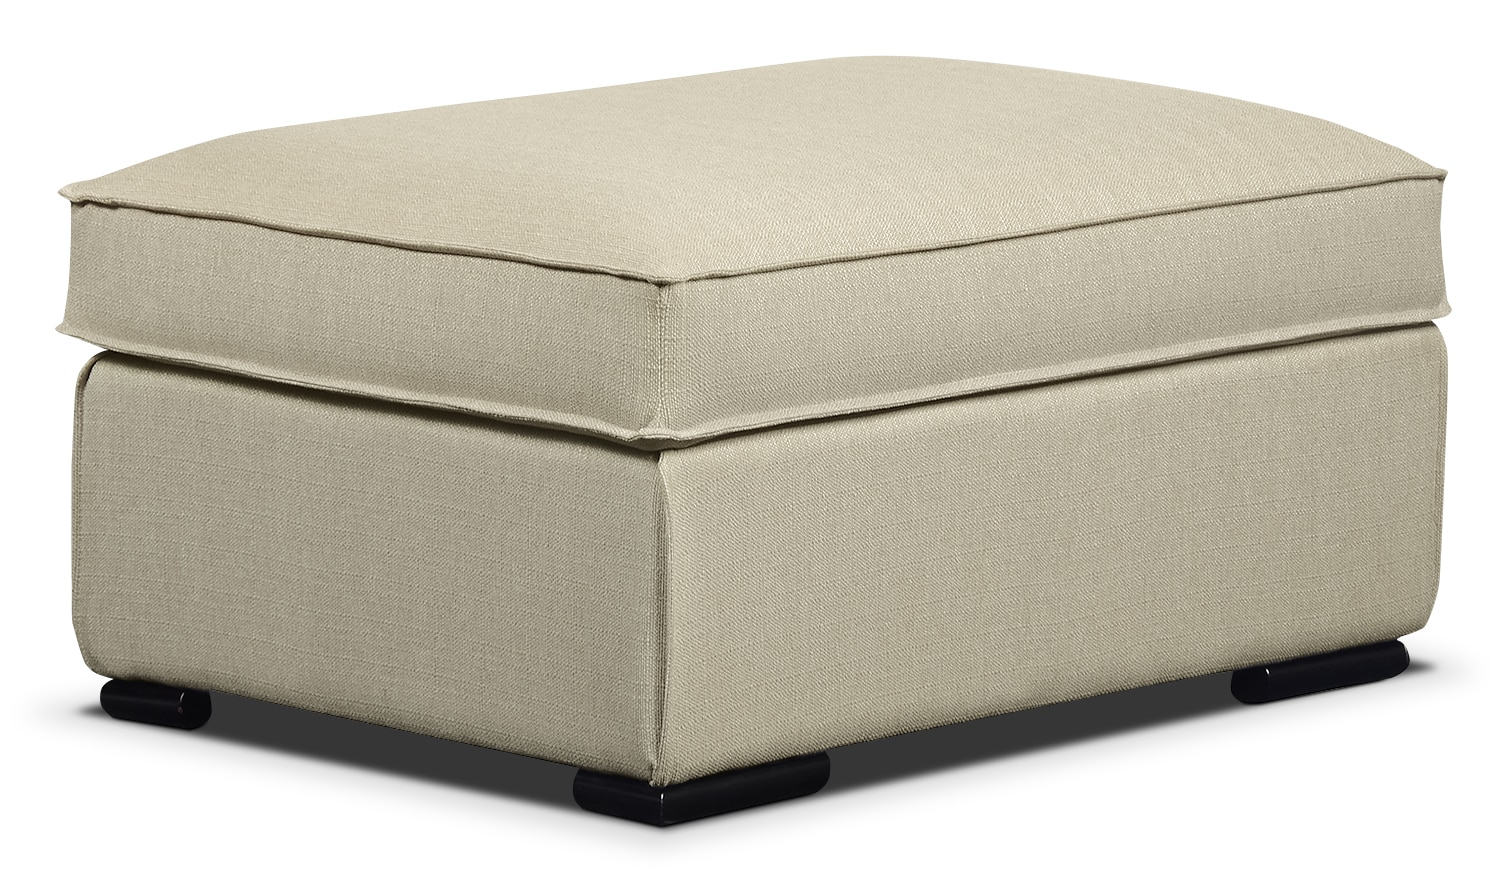 Living Room Furniture - Milan Linen-Look Fabric Storage Ottoman – Taupe